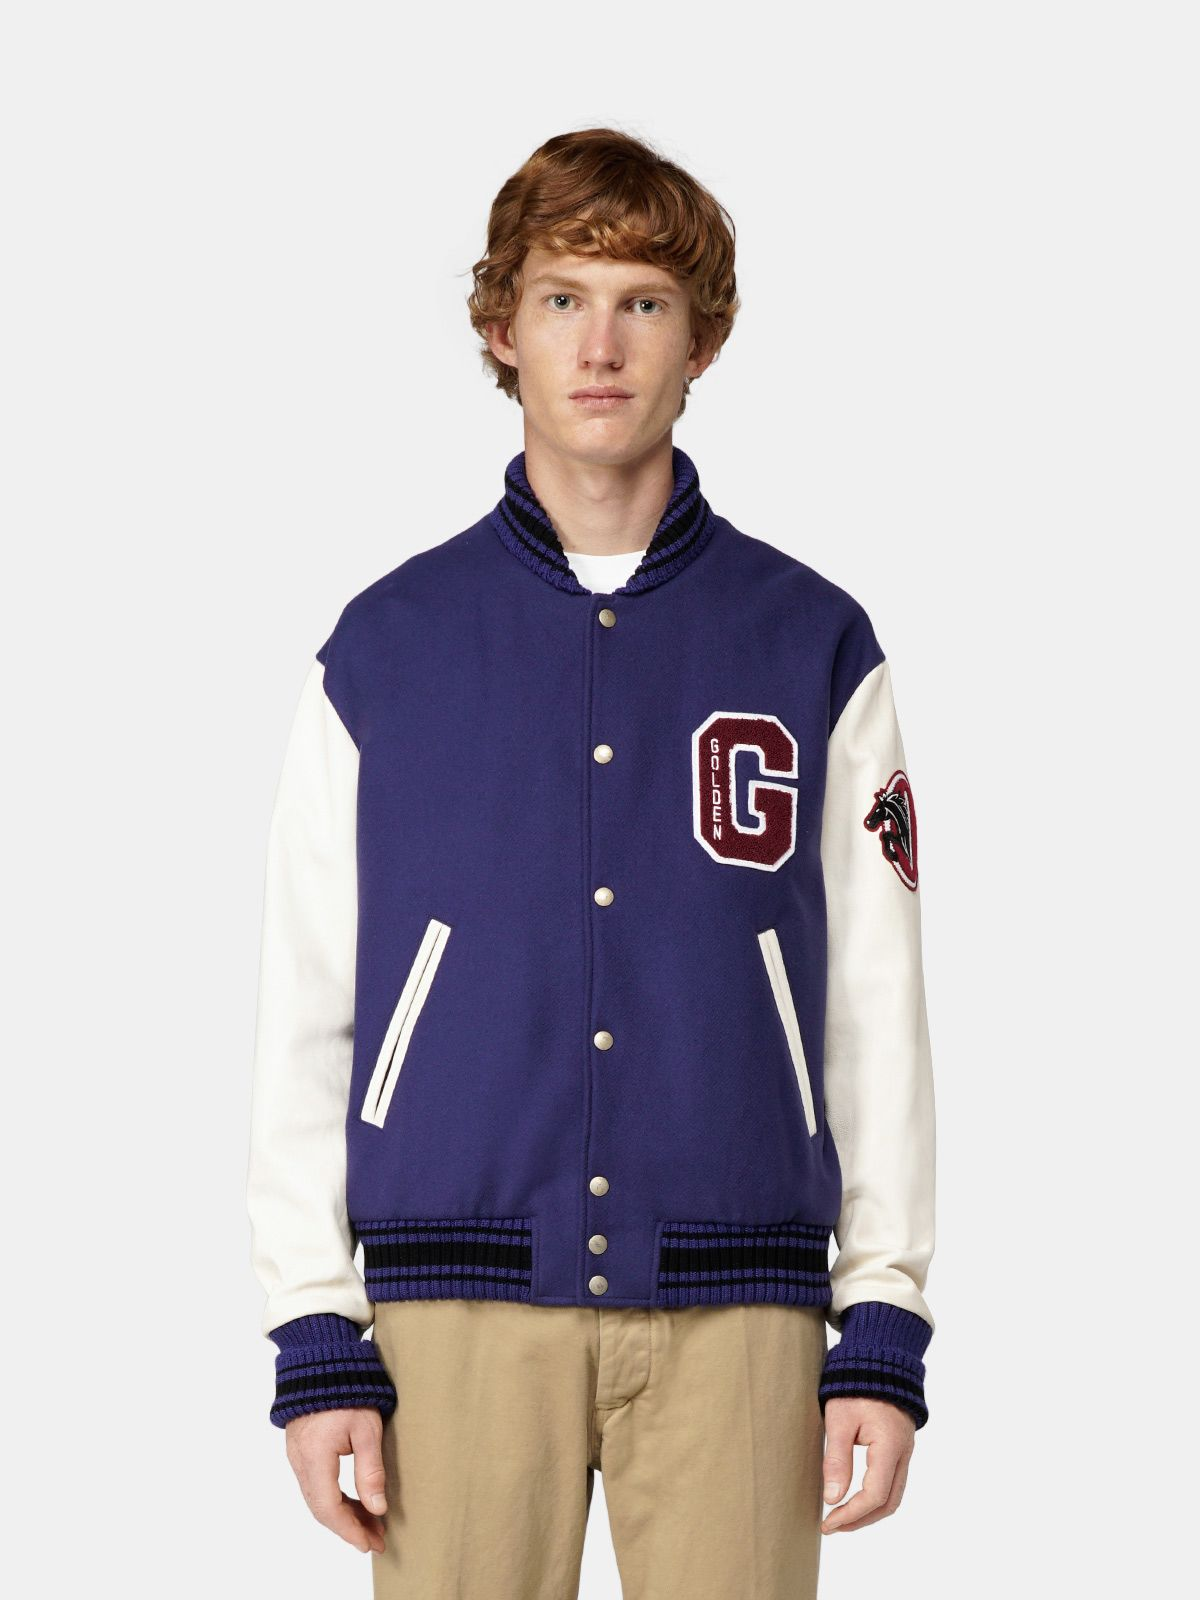 Golden Goose - Aleandro bomber jacket with print on the back in